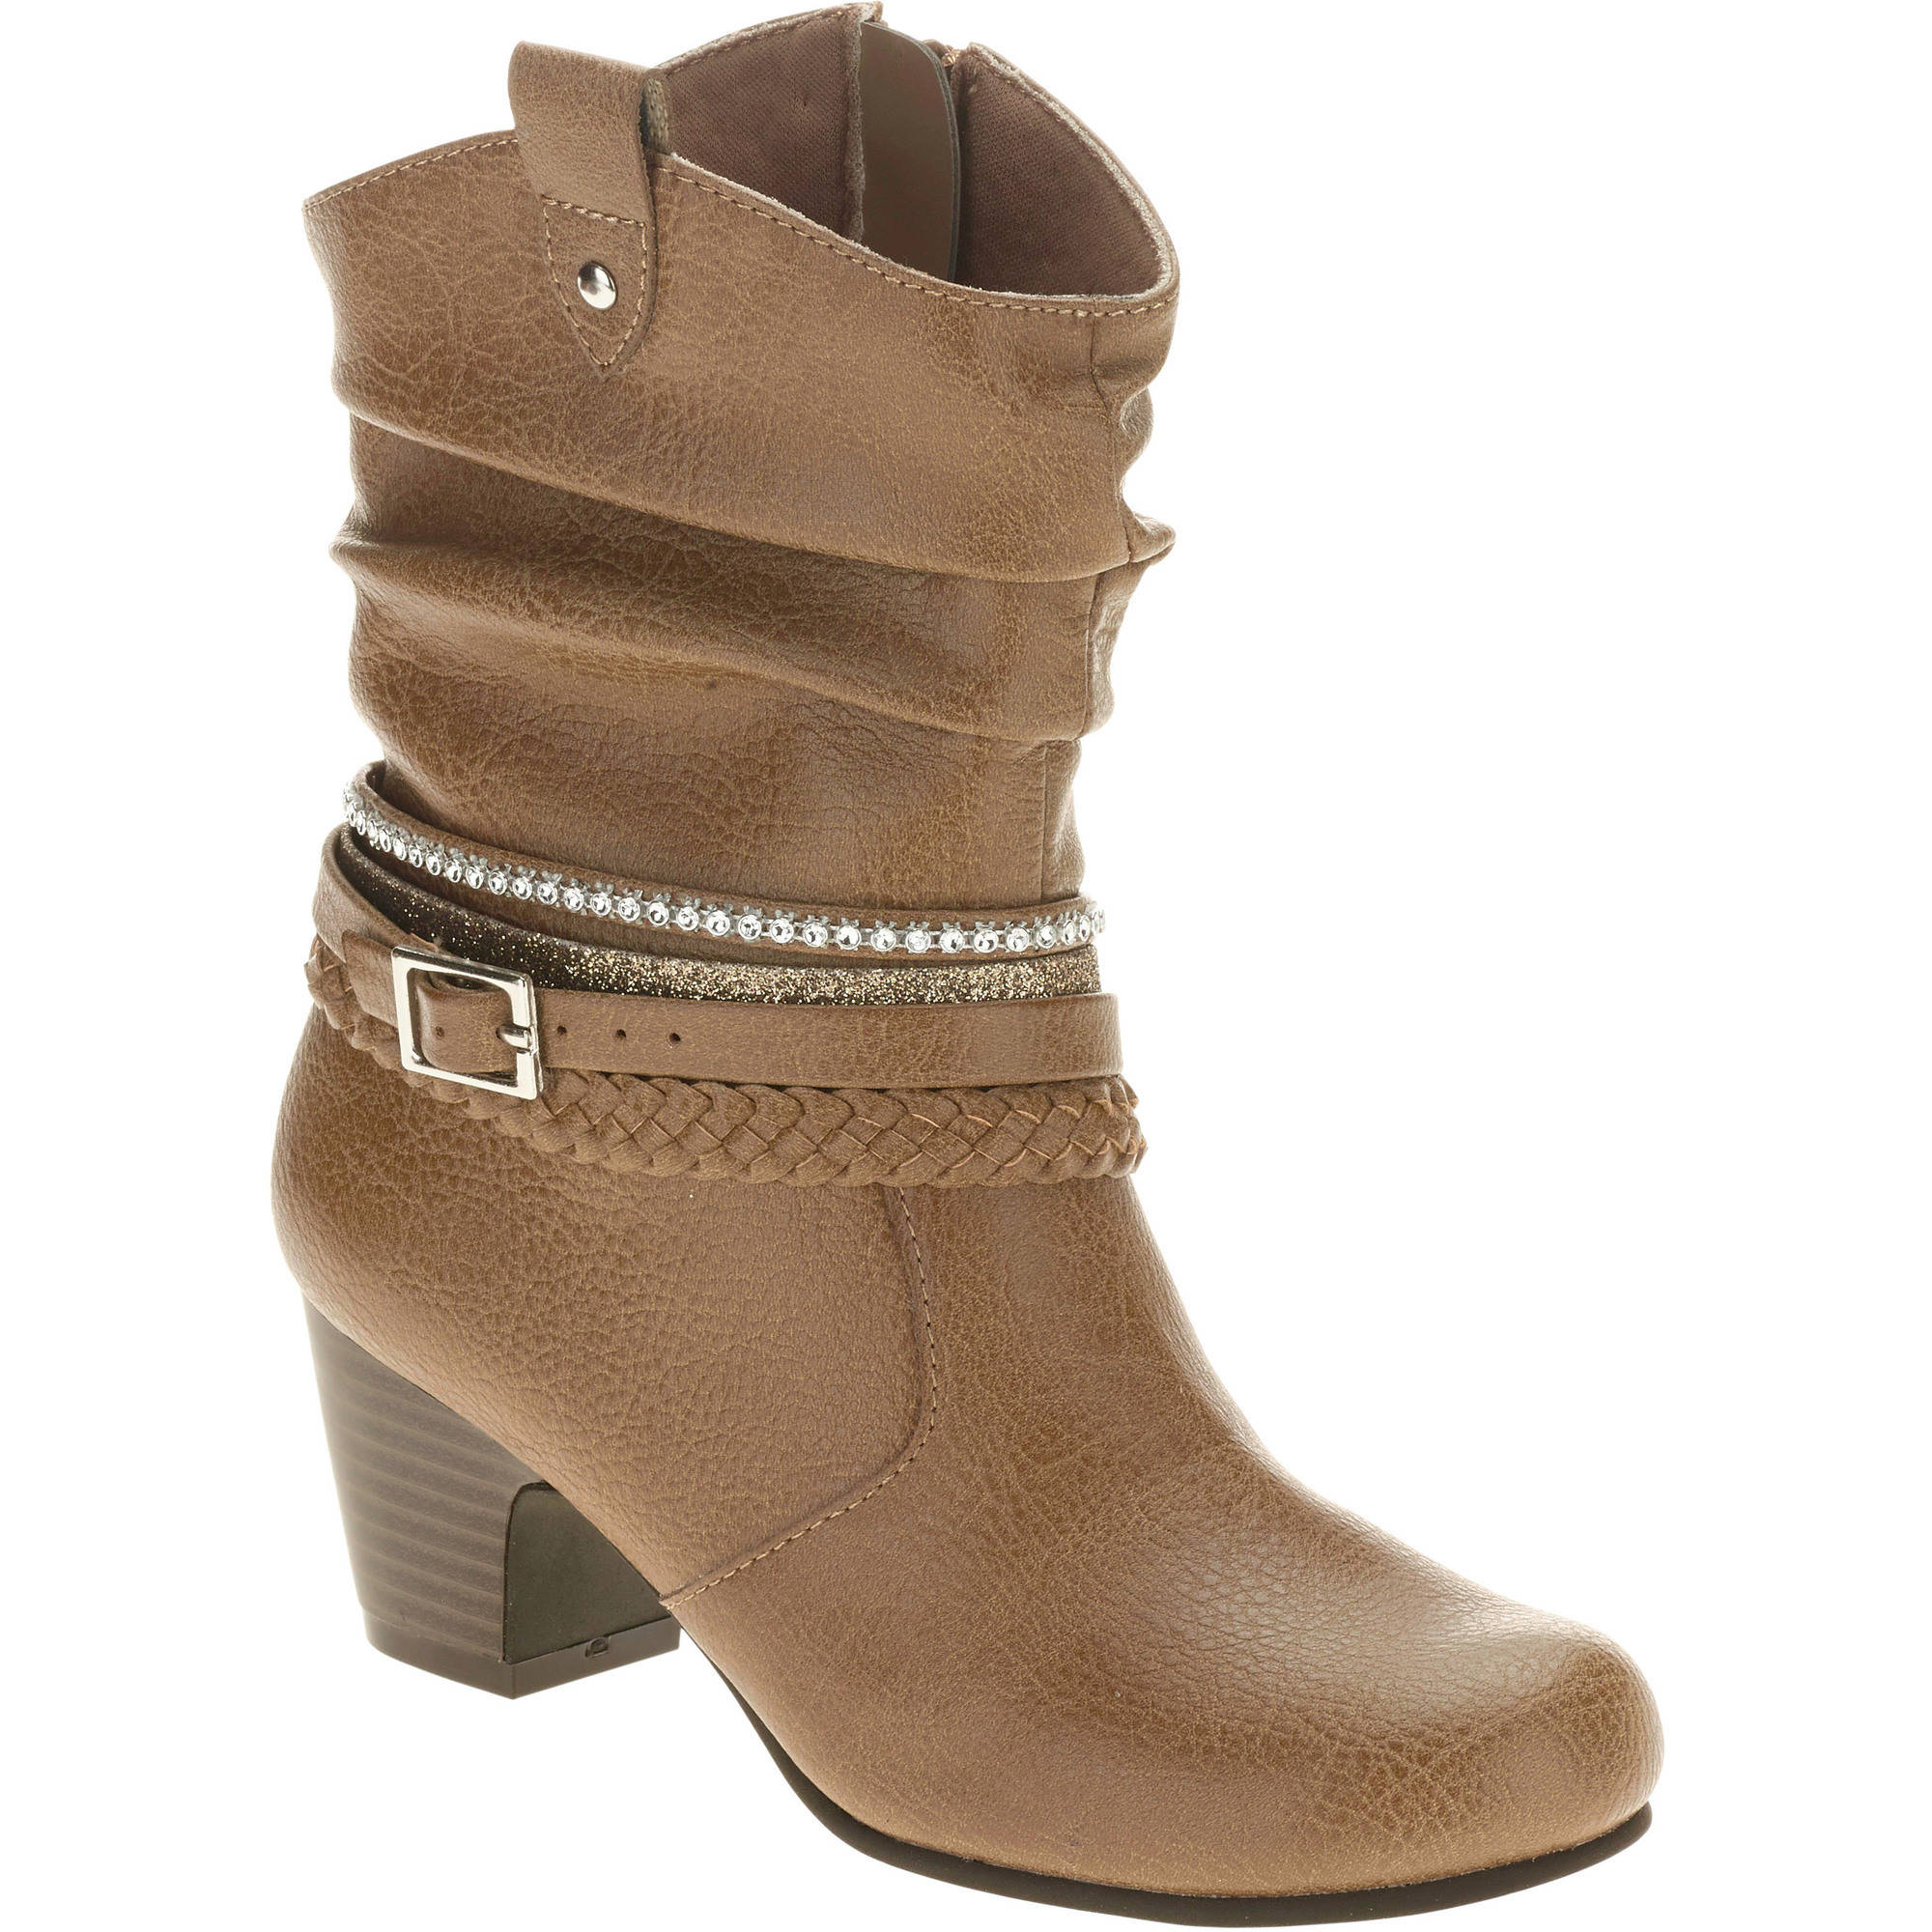 Faded Glory Girls' Bling Heel Boots